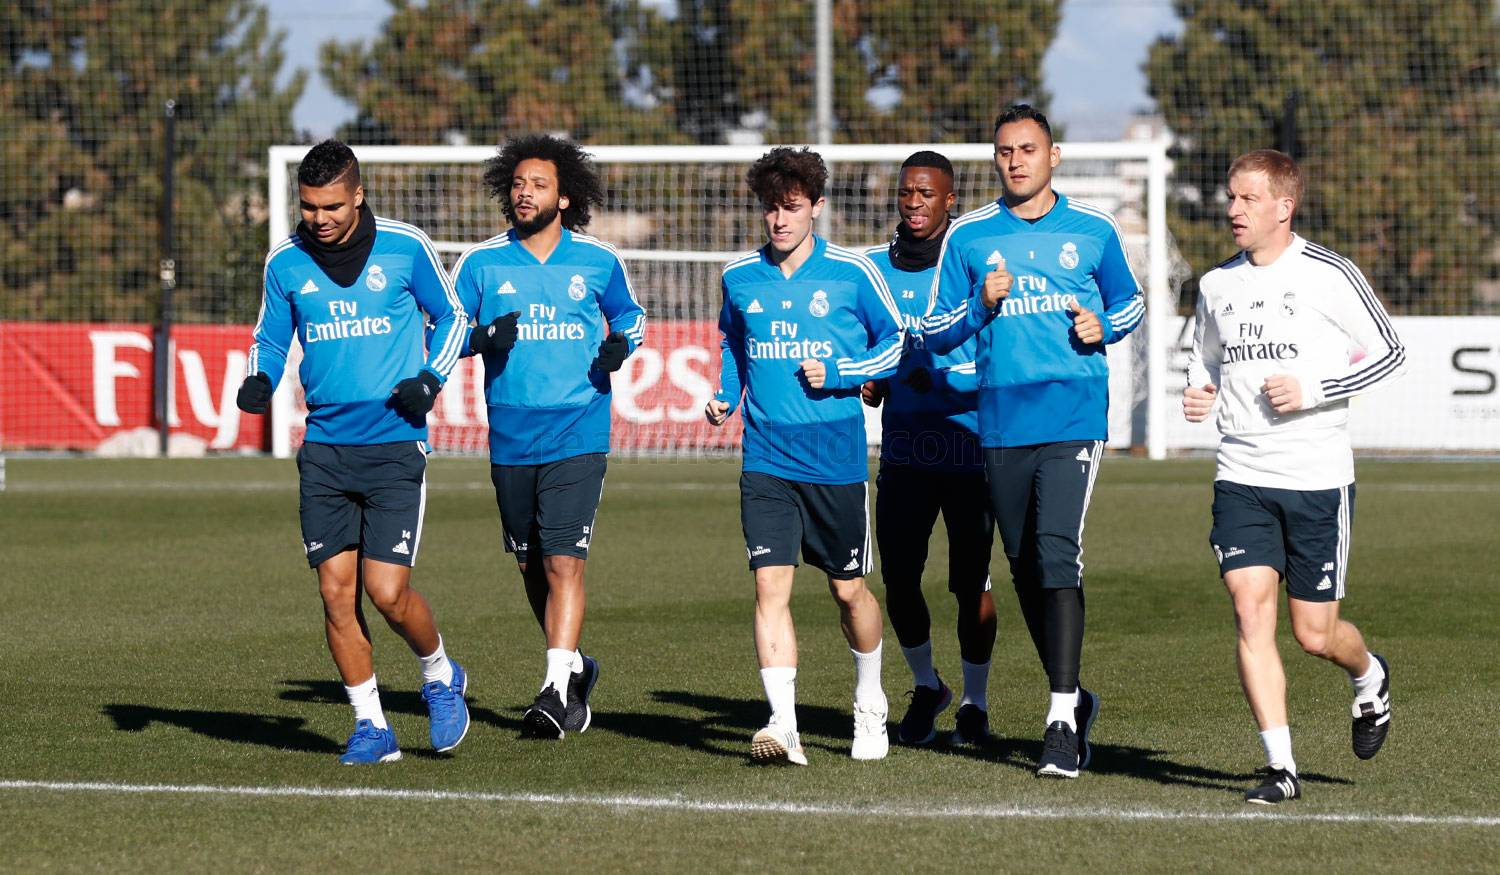 Real Madrid - Entrenamiento del Real Madrid - 25-01-2019